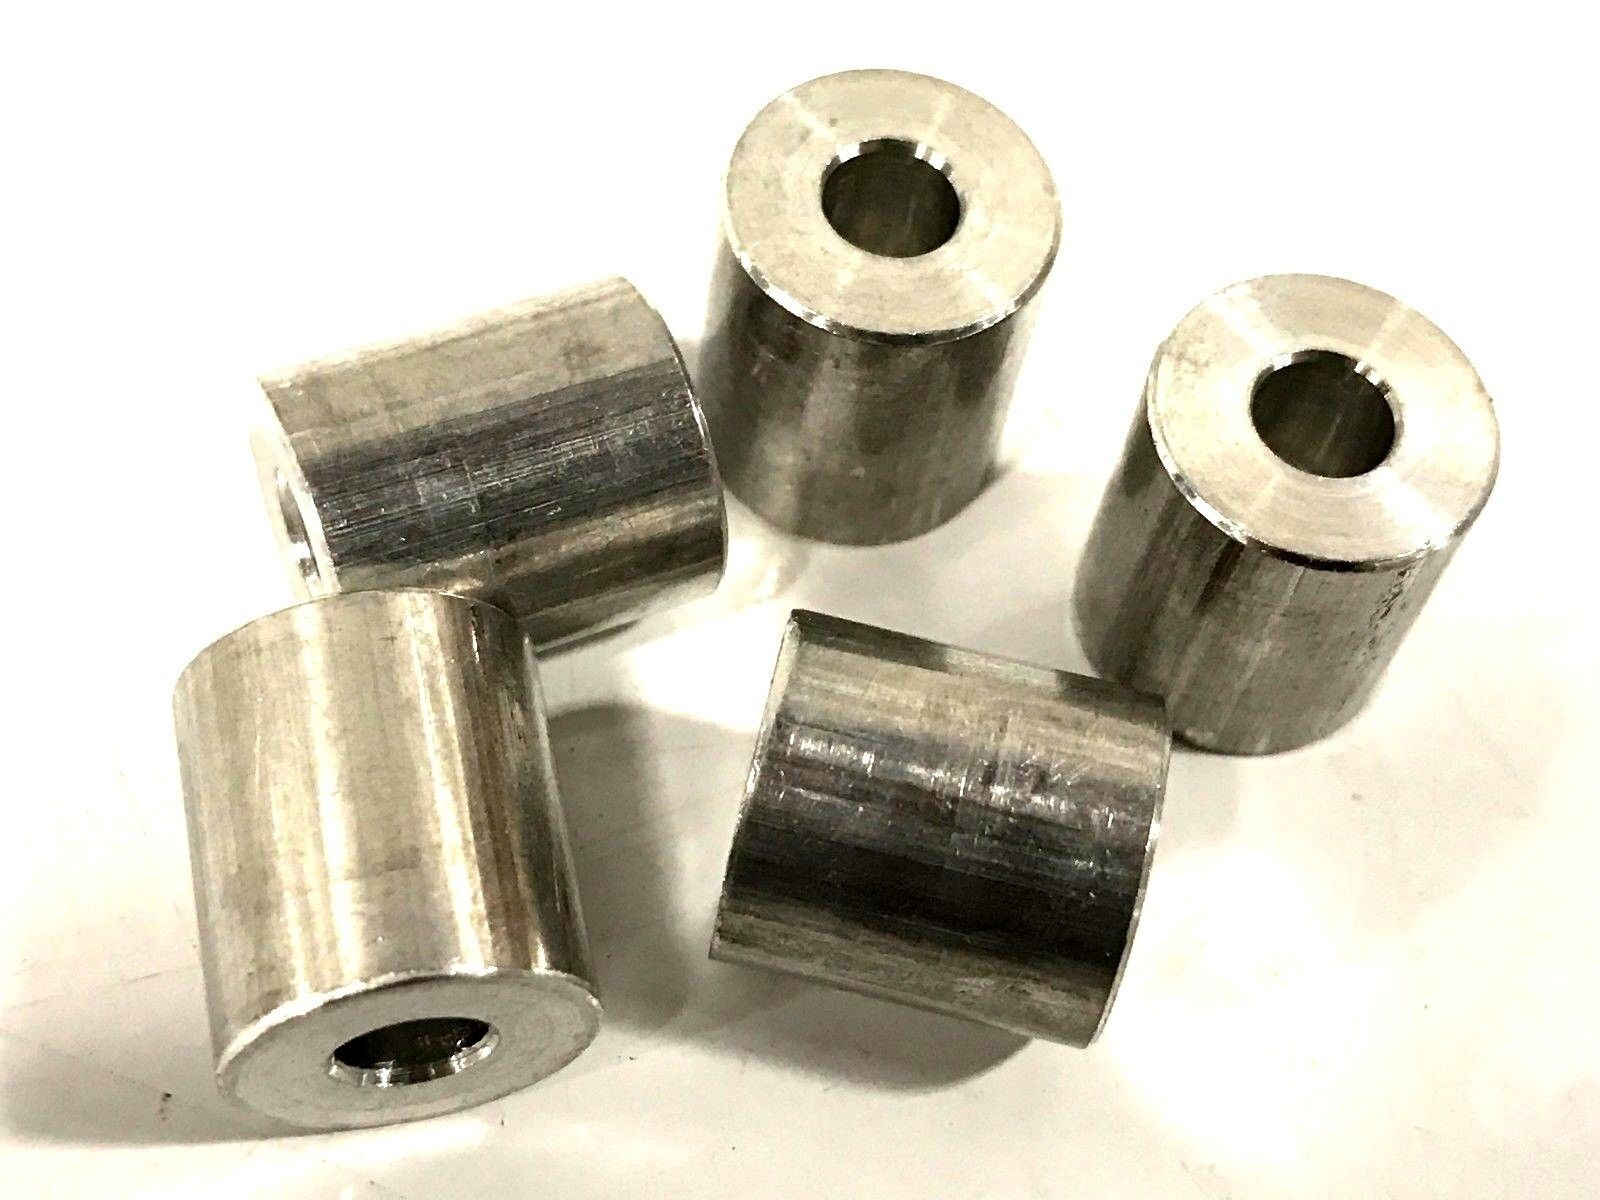 Pack of 5 1//2 OD 3//8 Length Made in US Aluminum Plain Finish 1//4 Screw Size Round Spacer 0.252 ID